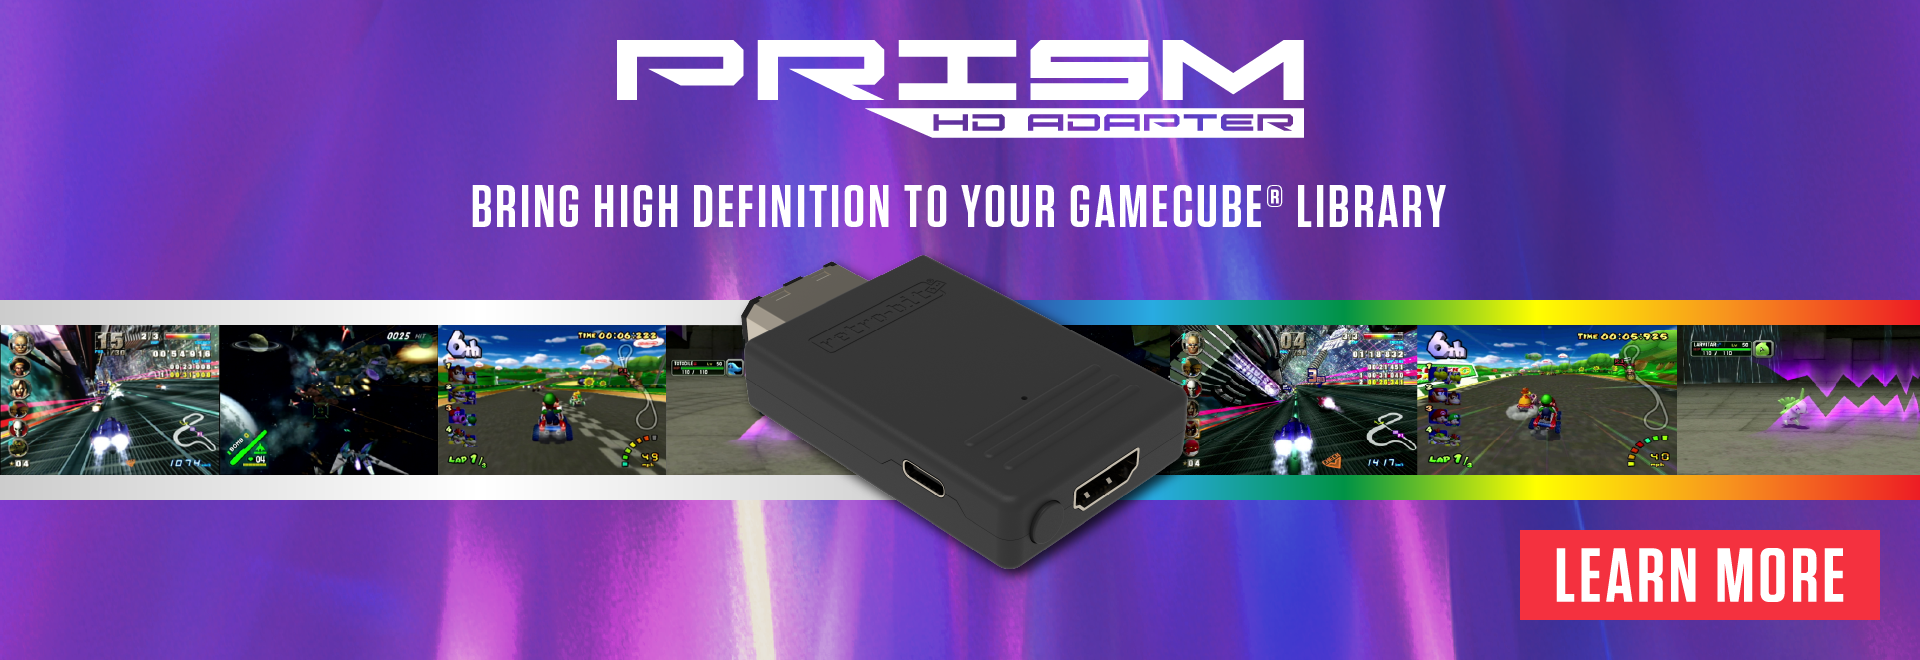 Prism HD Adapter for GameCube®